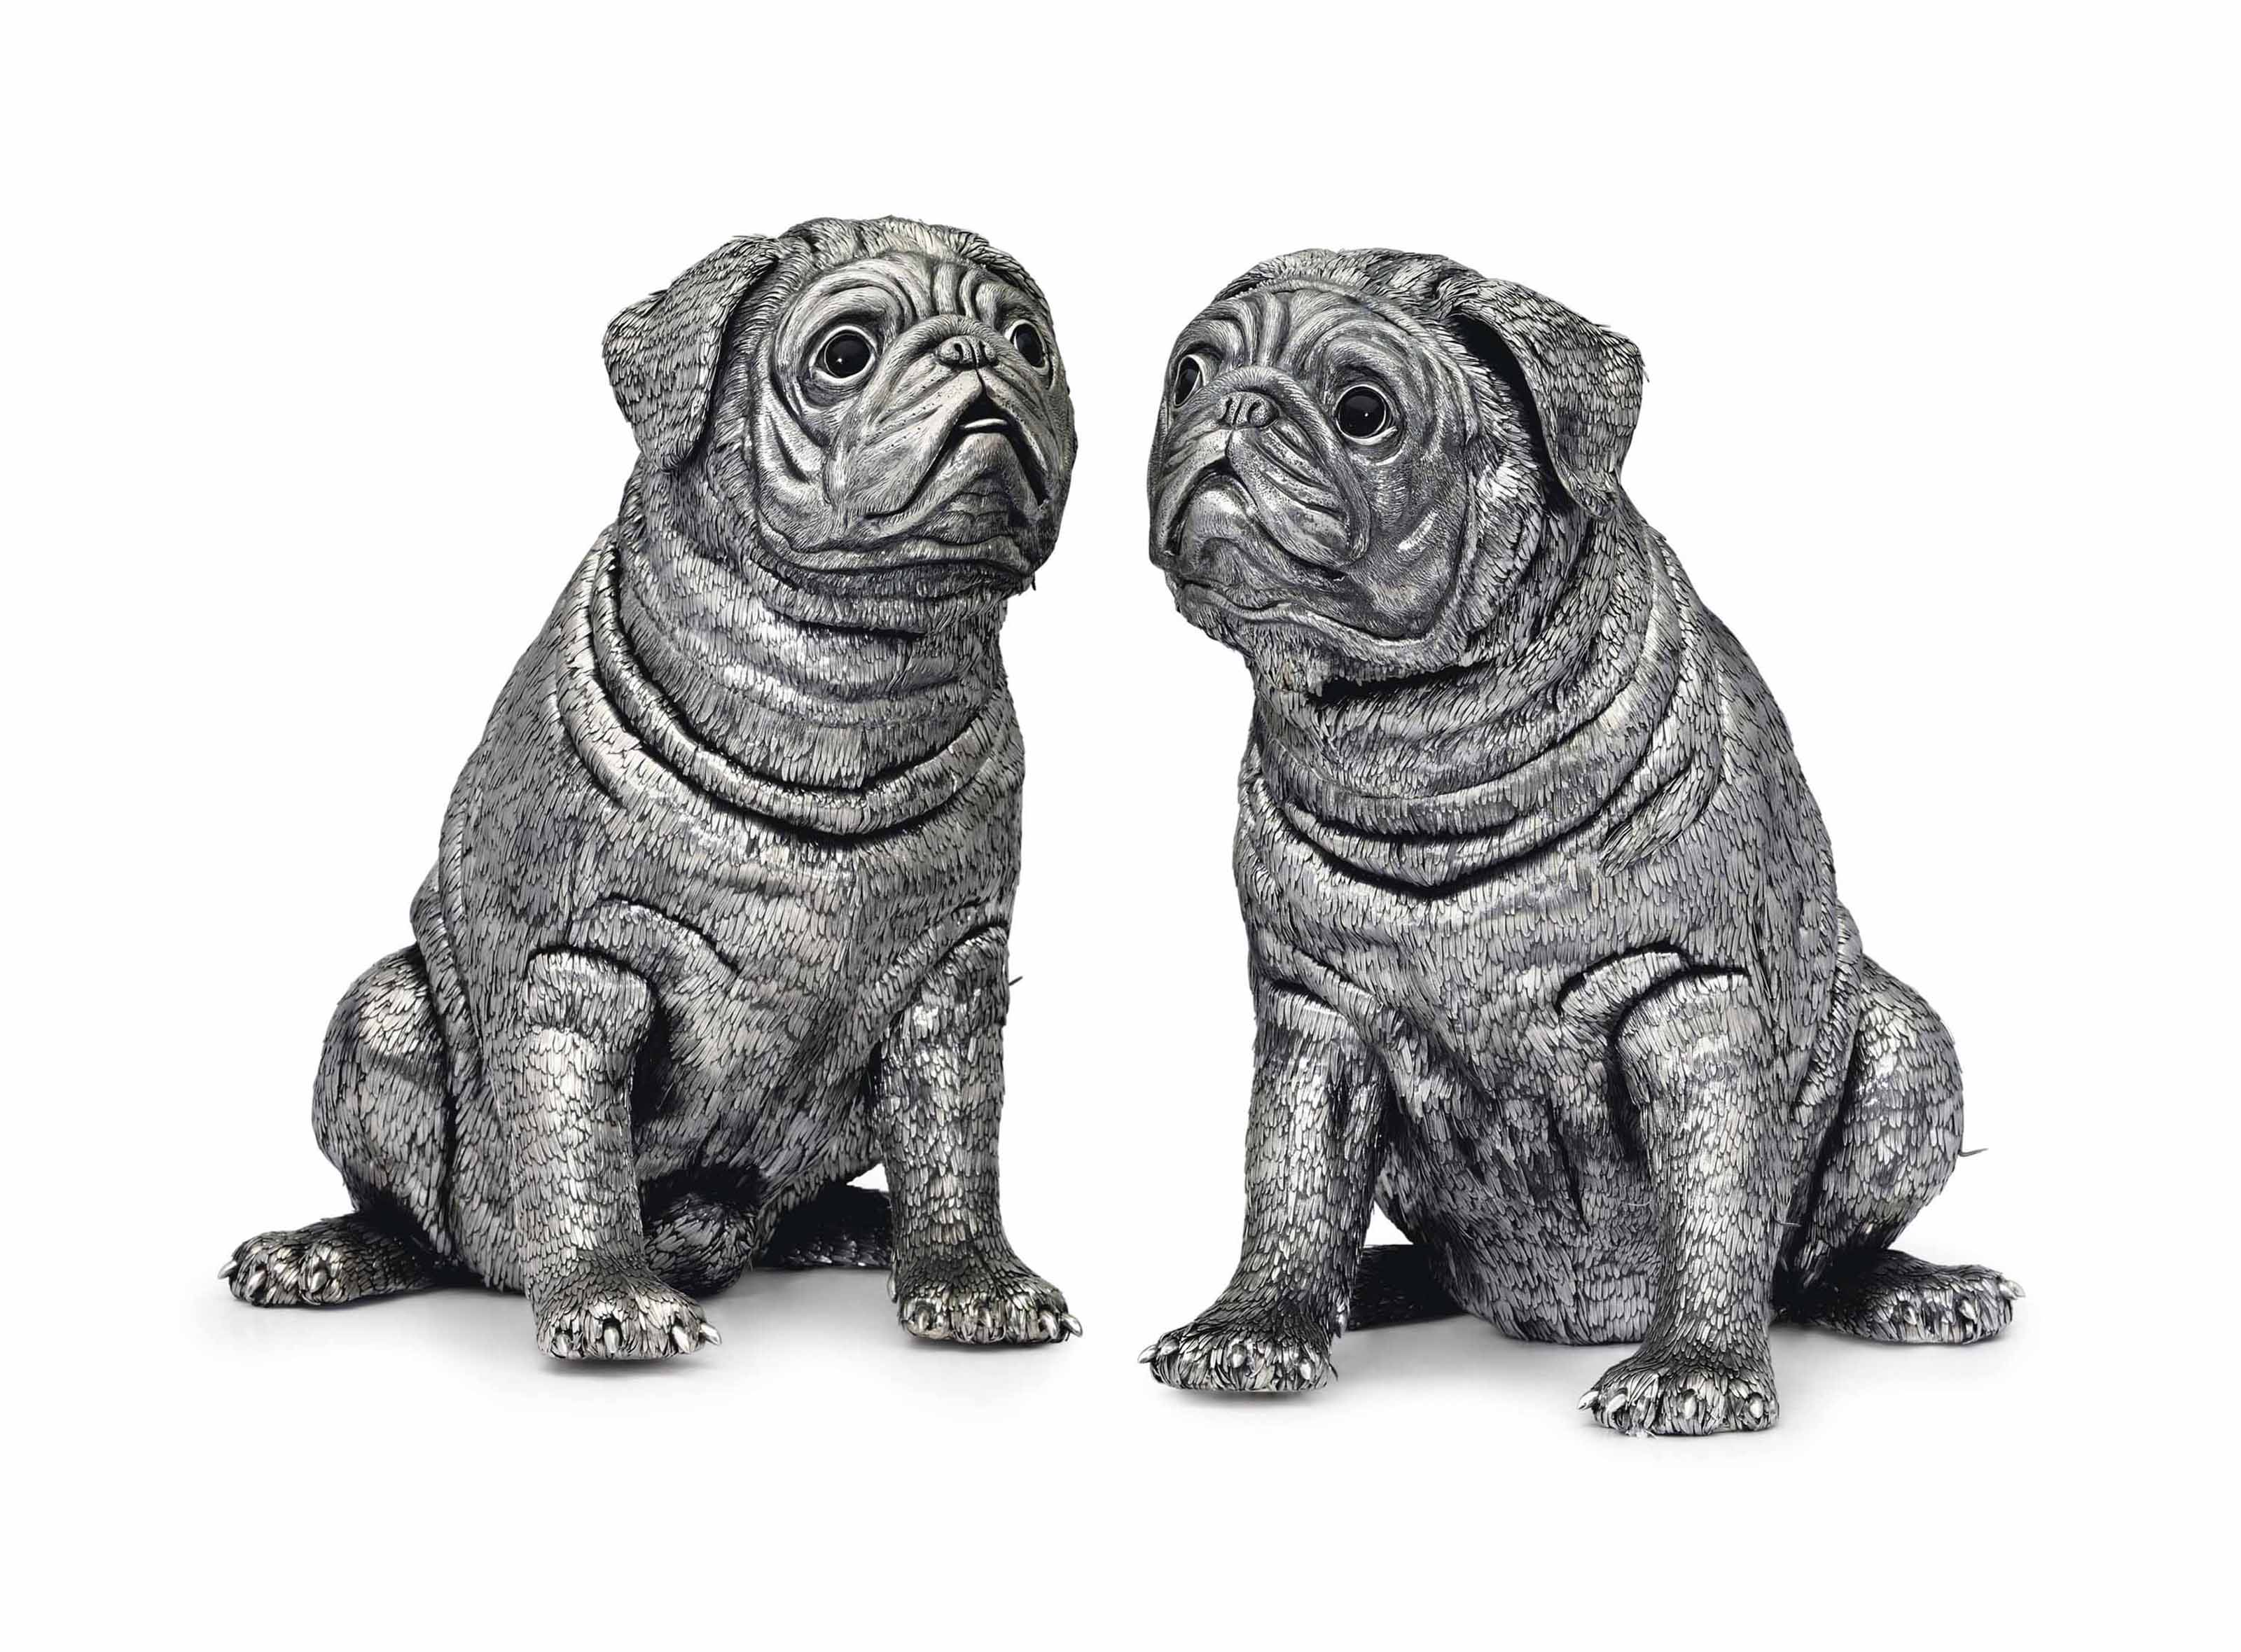 A PAIR OF ITALIAN SILVER WINE COOLERS IN THE FORM OF PUG DOGS